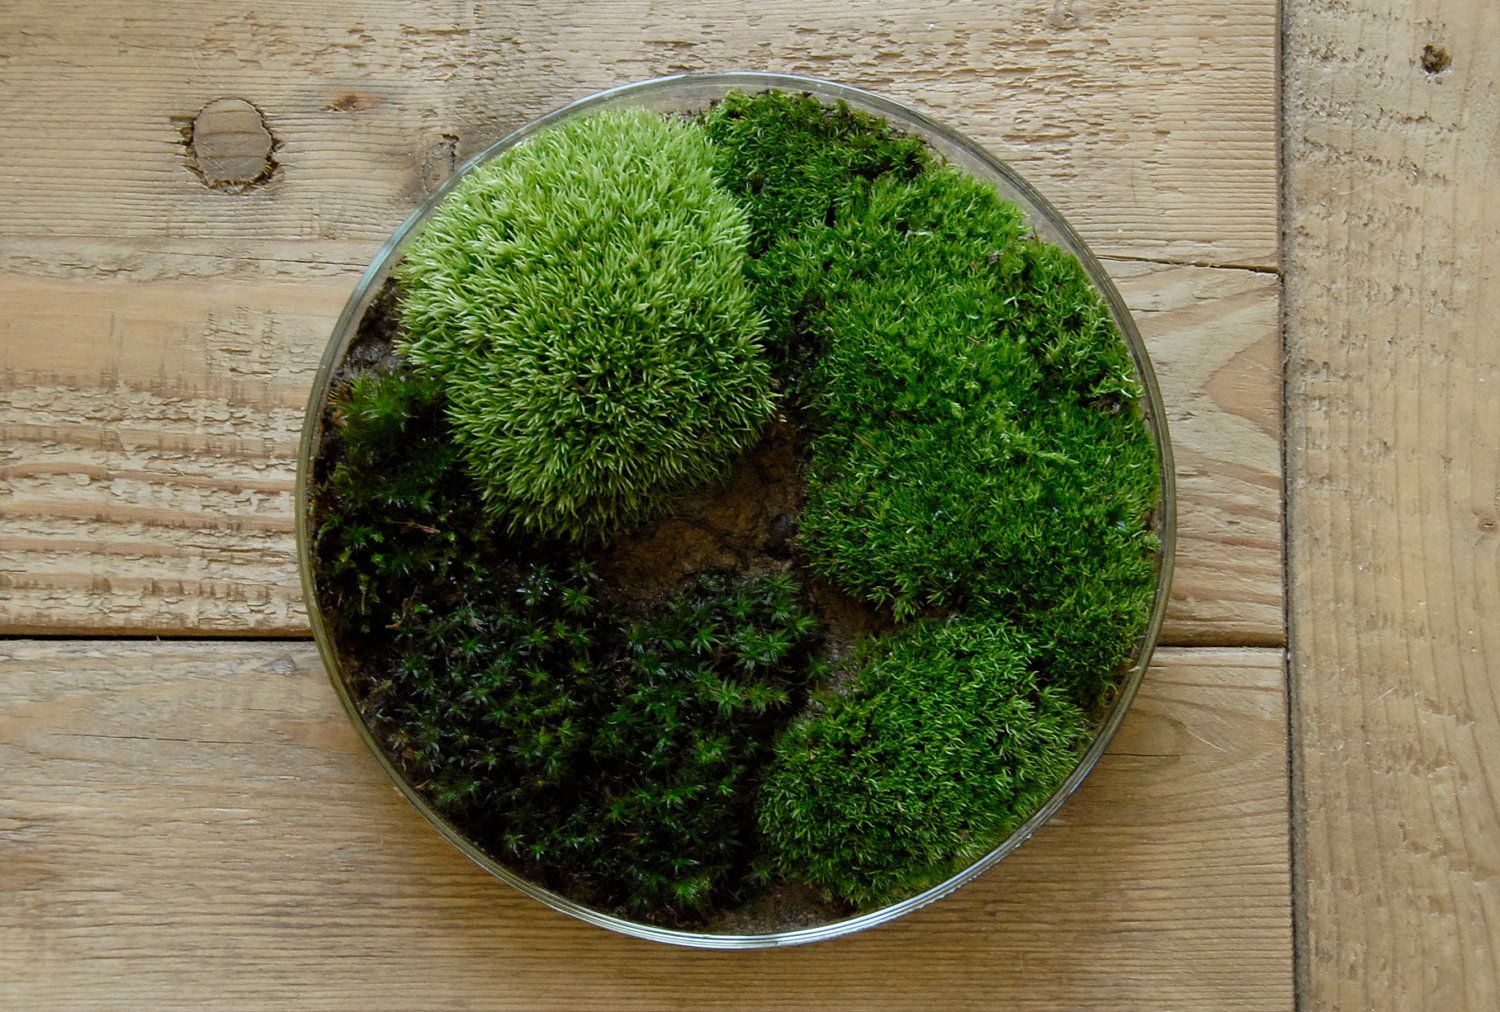 Petri dish plant terrarium i really want to make this so moss petri dish terrarium science gift for men women spring nature decor easter gift for gardeners negle Choice Image